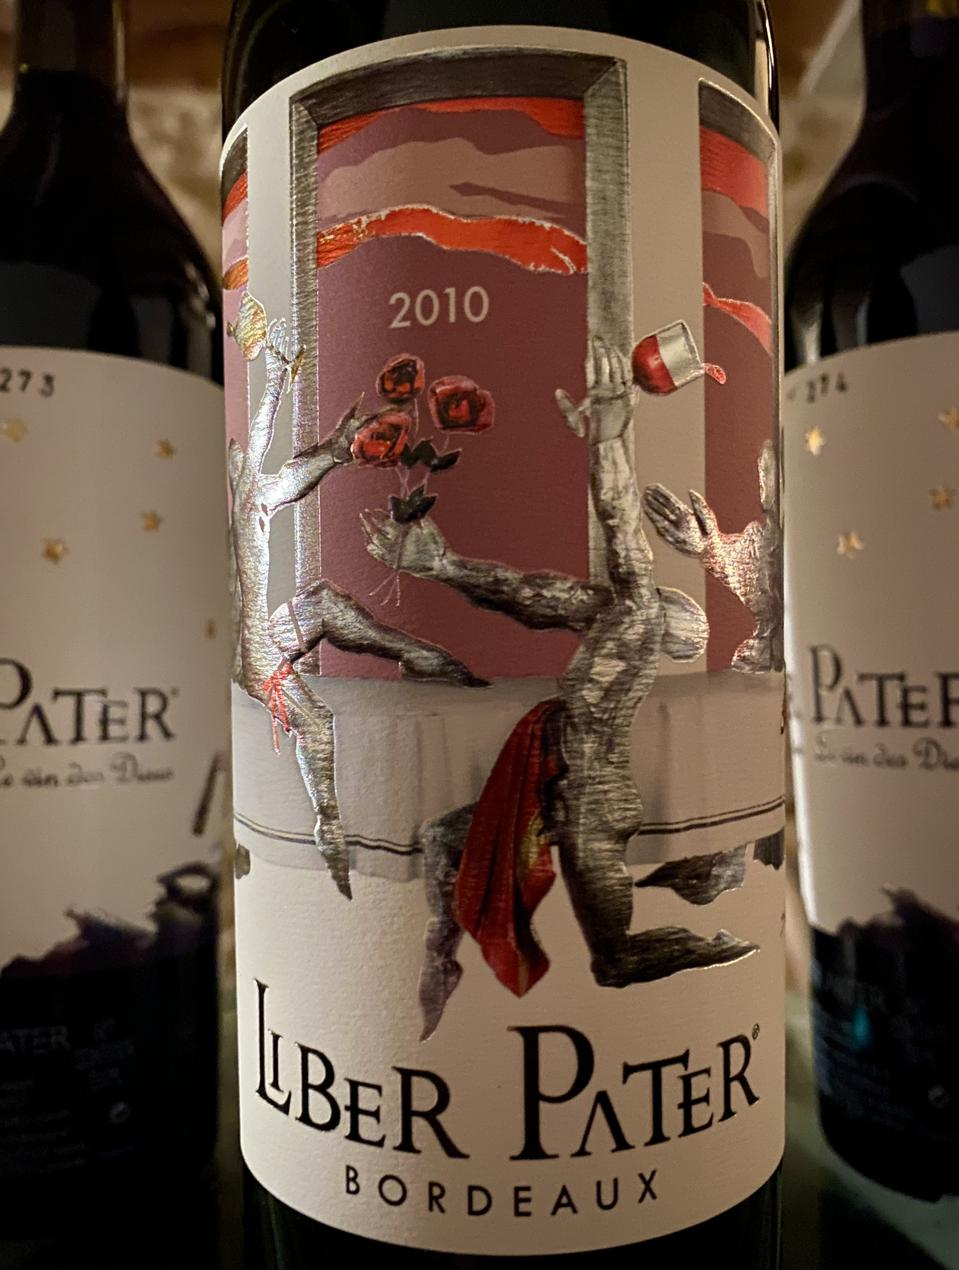 A bottle of Liber Pater 2010 wiine